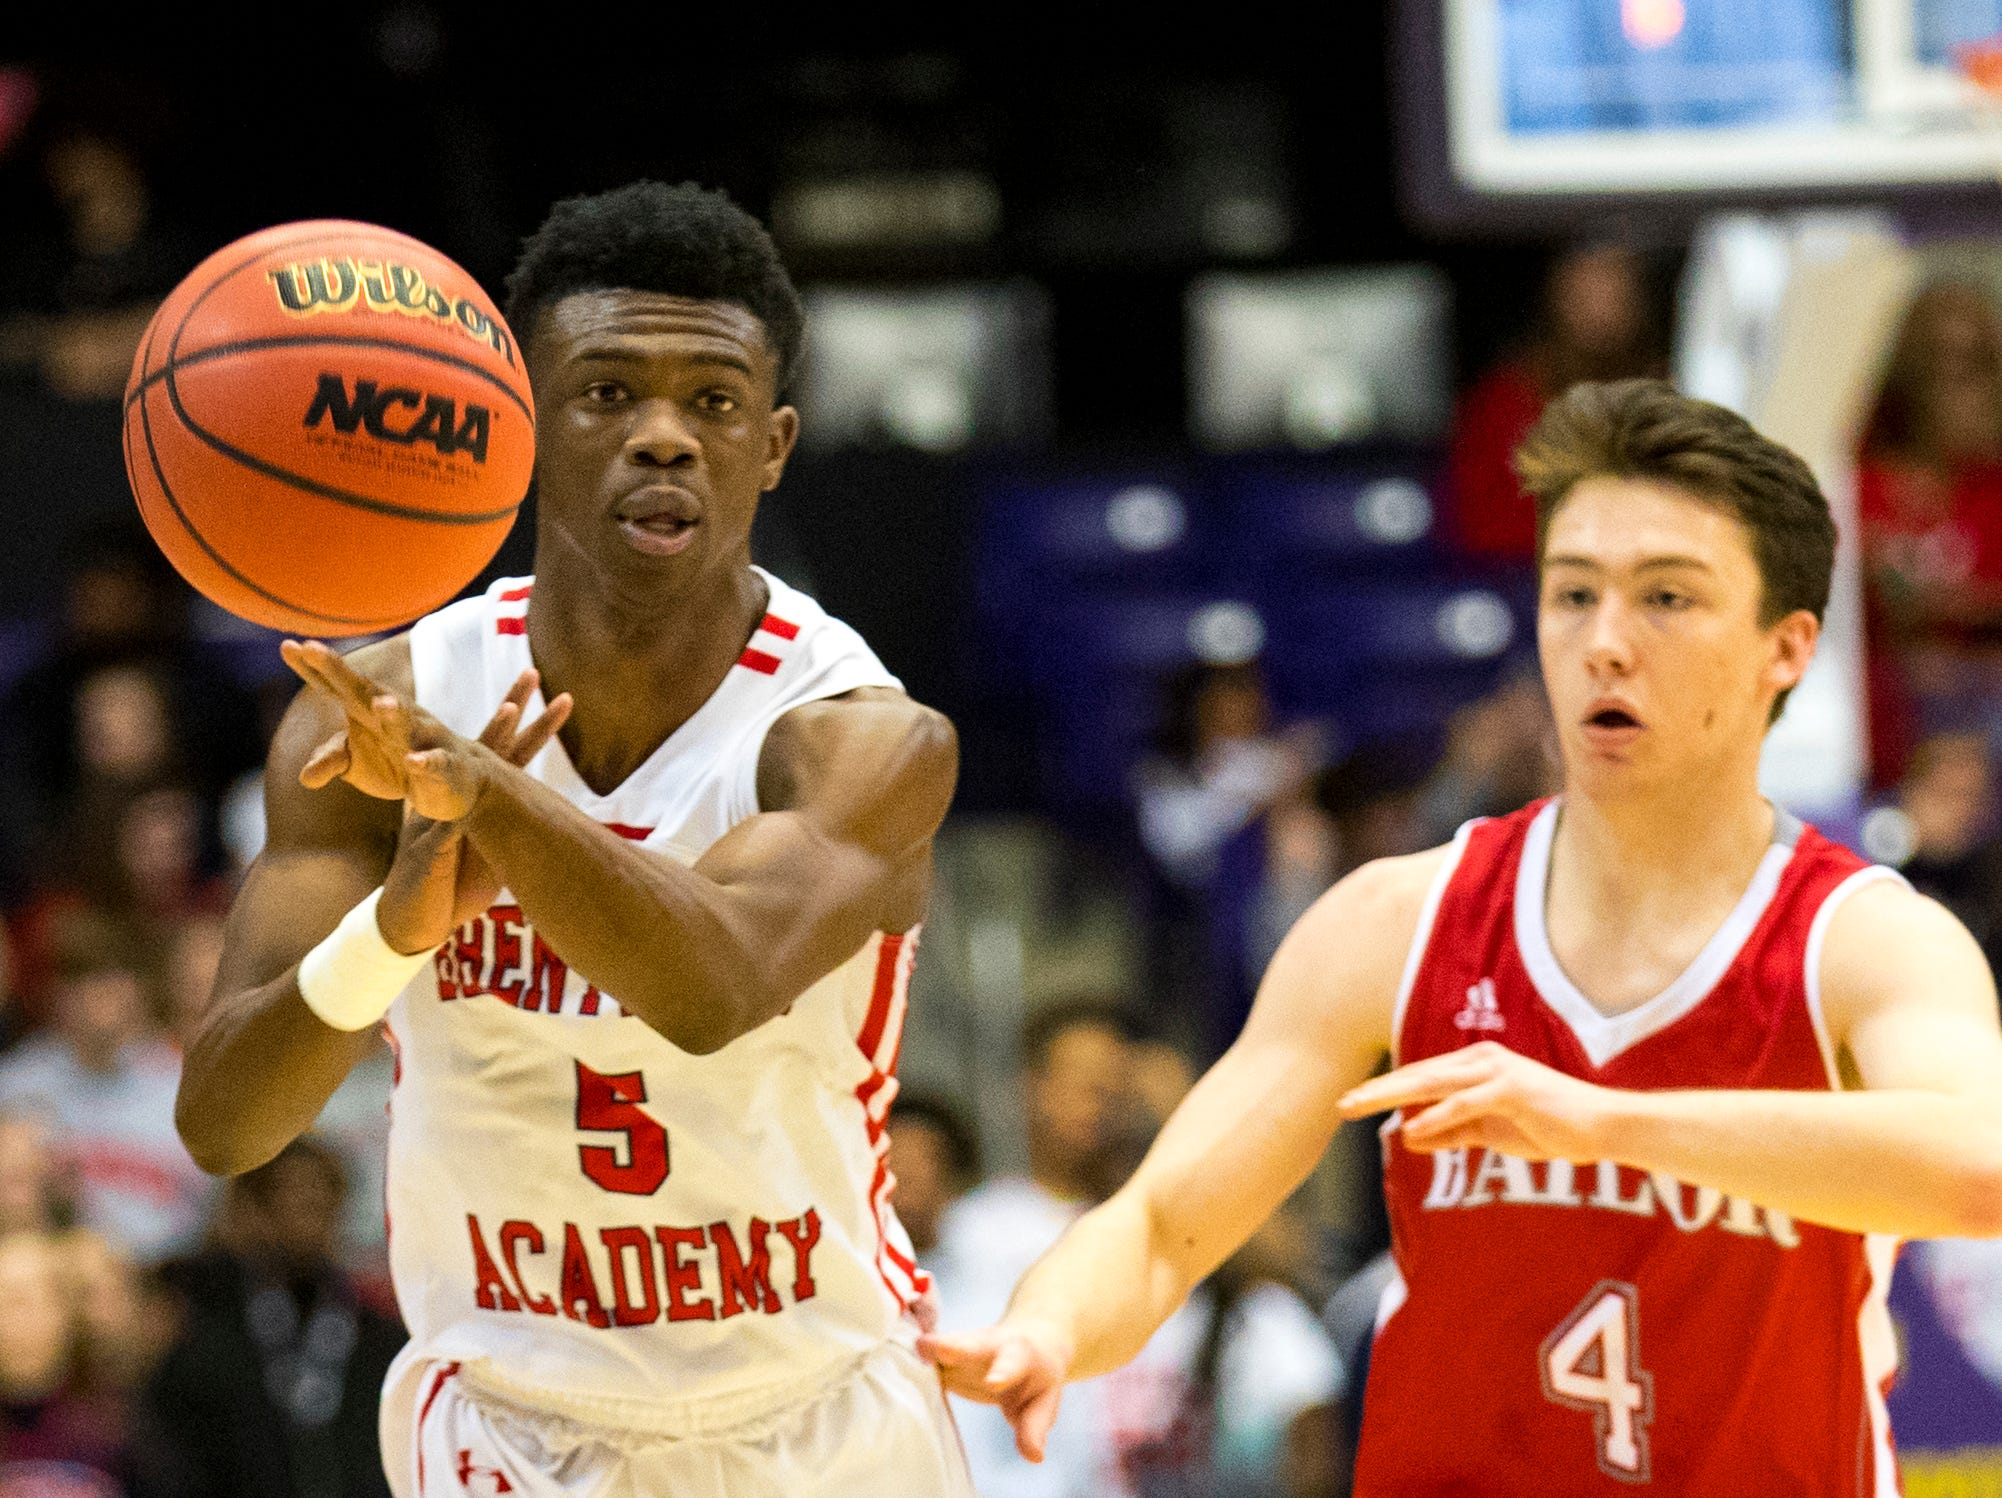 Brentwood Academy's Marcus Fitzgerald (5) passes during Brentwood Academy's game against Baylor in the semifinal round of the TSSAA Division II Class AA State Championships at Lipscomb University's Allen Arena in Nashville on Thursday, Feb. 28, 2019.